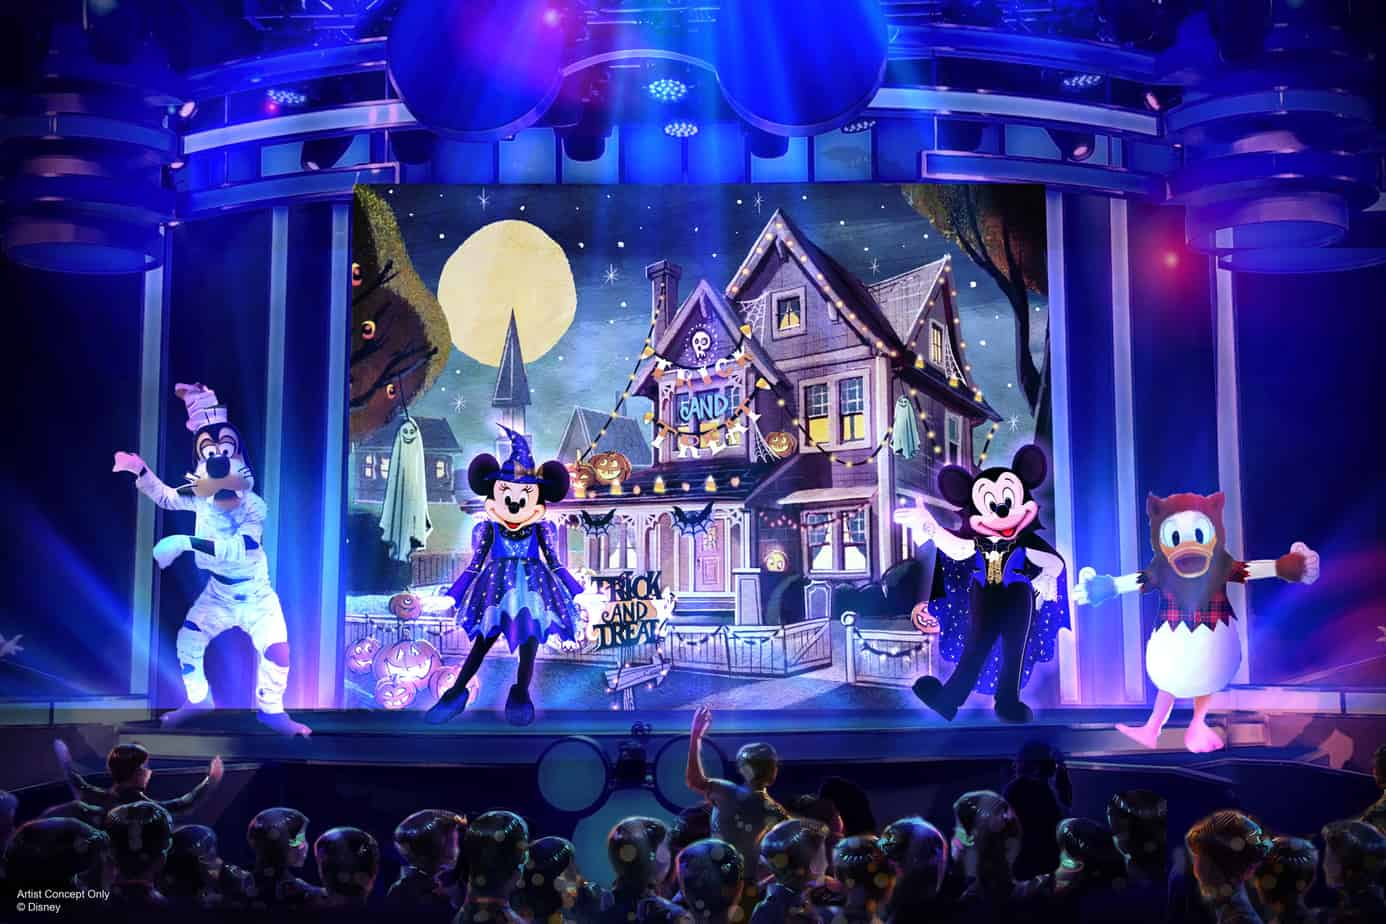 Mickeys Trick and Treat Show